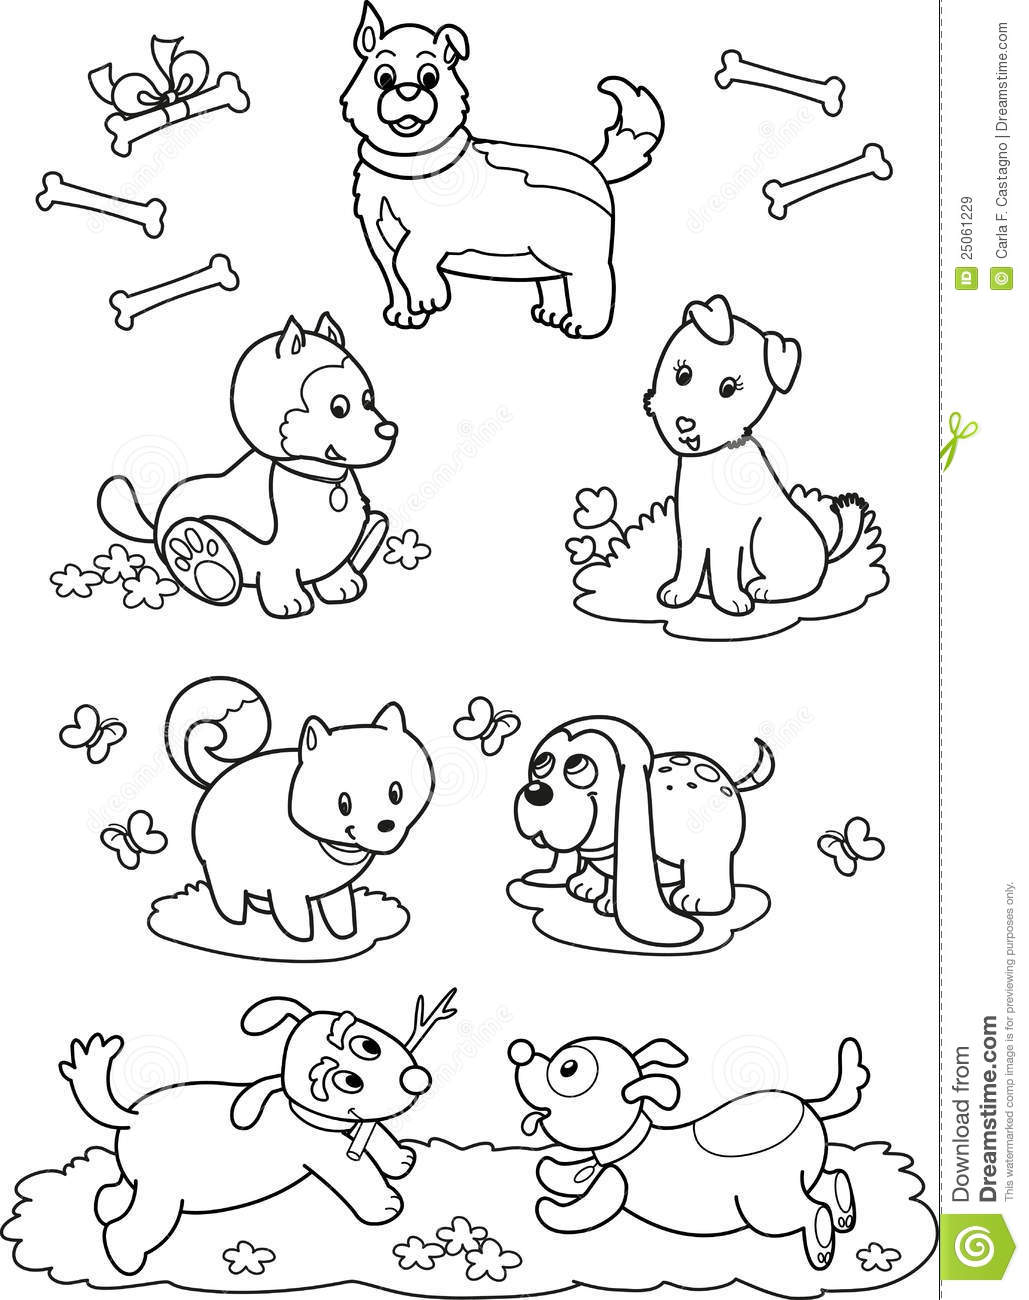 Royalty Free Coloring Pages At Getcolorings